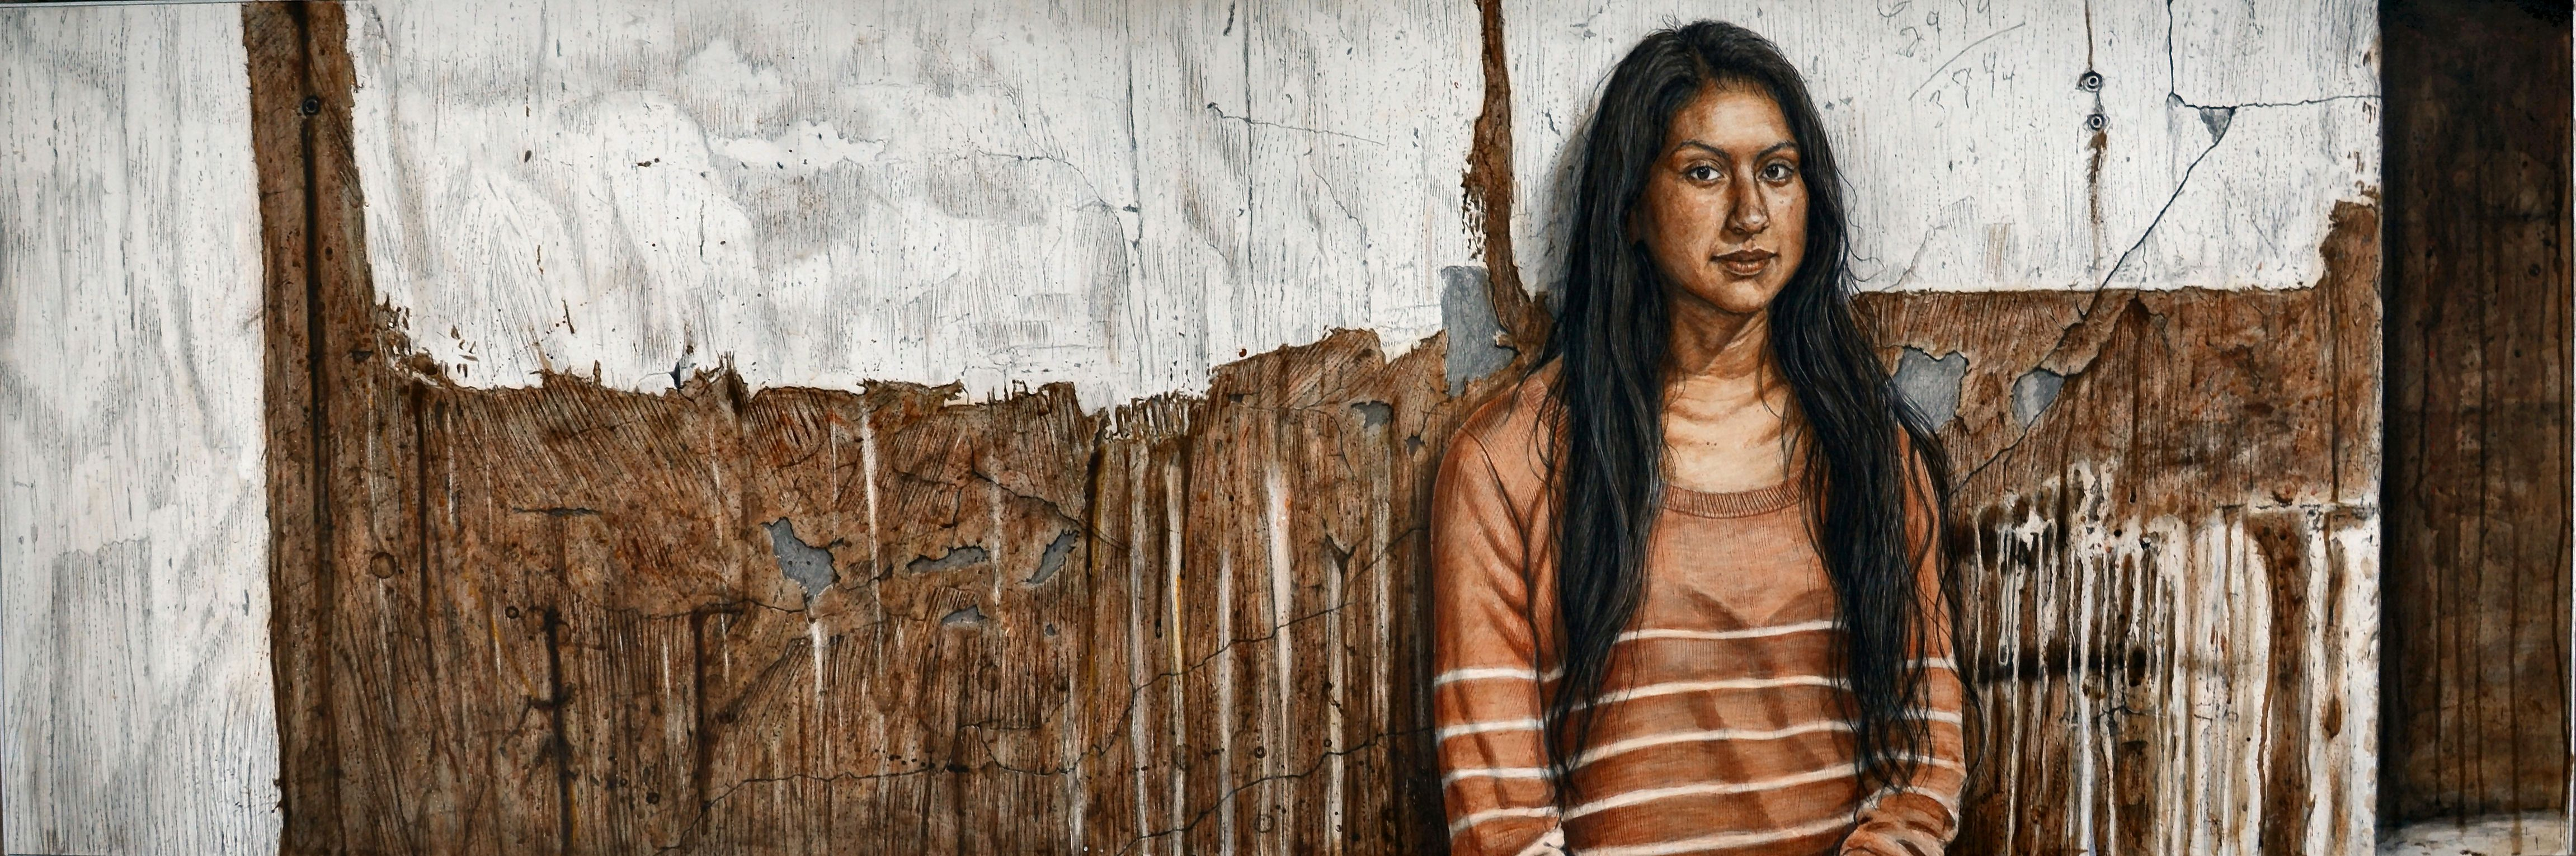 """""""Immigrant: Symphony in Sepia"""" by Robert Jinkins"""